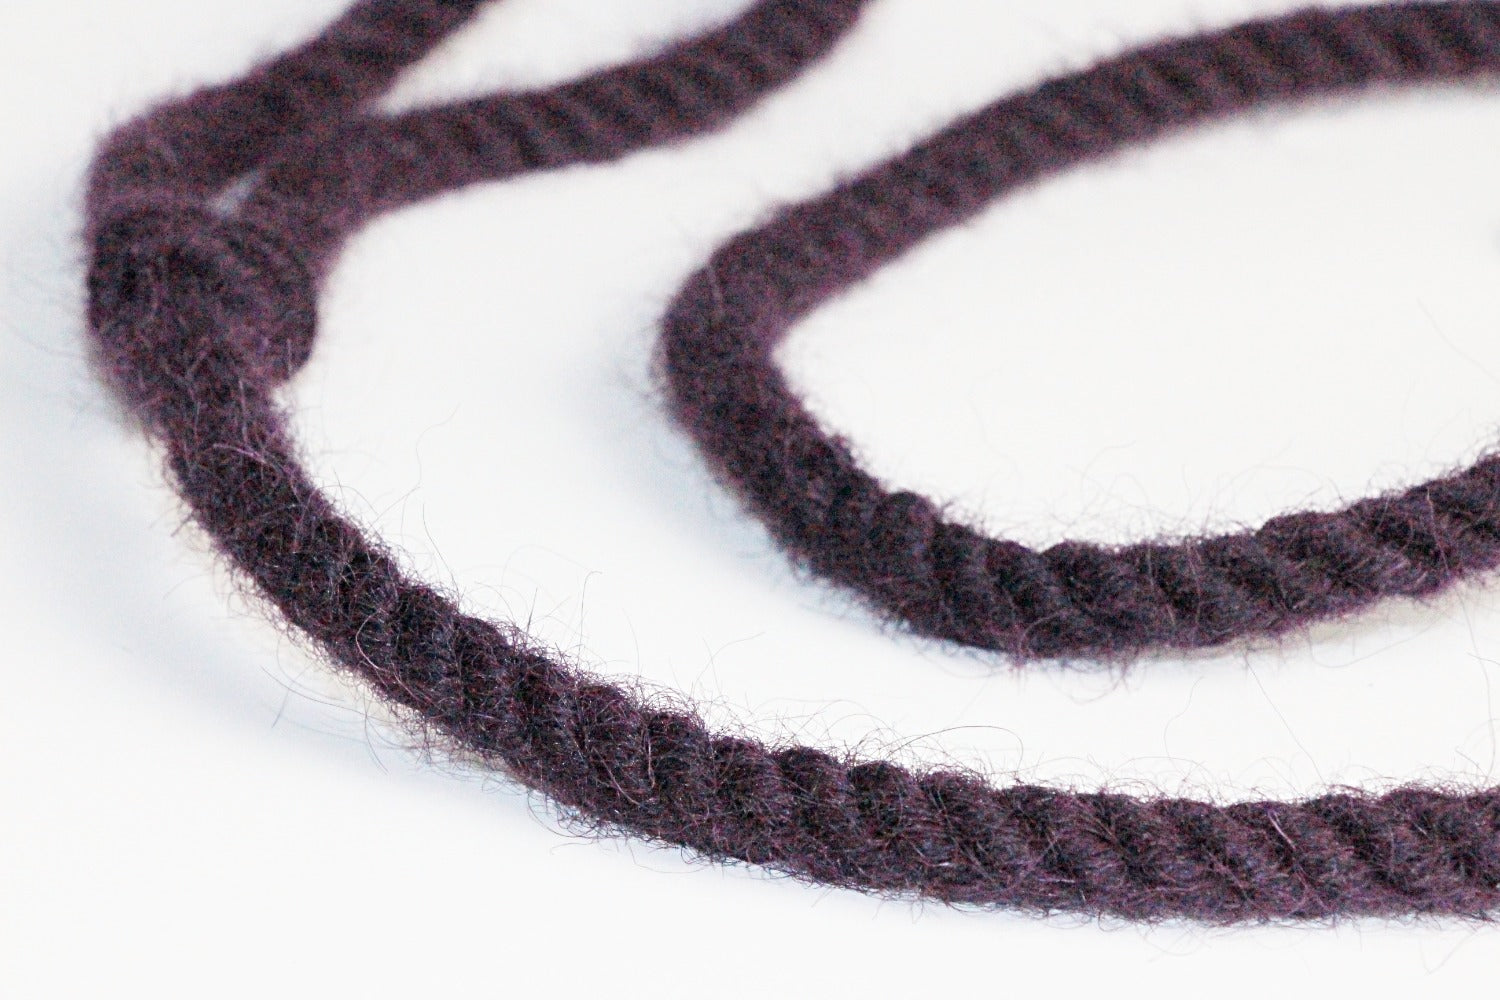 Twool purple plastic free dog lead close up